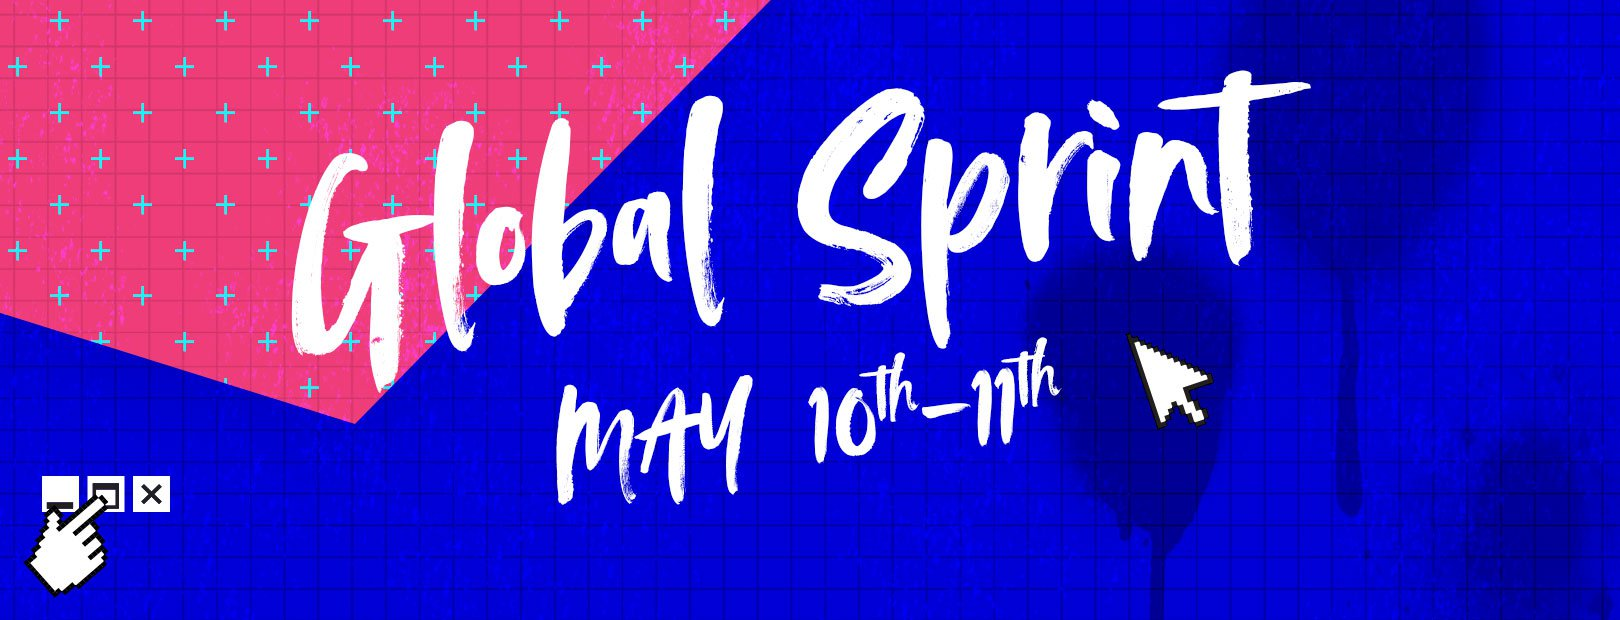 Global Sprint May 10-11